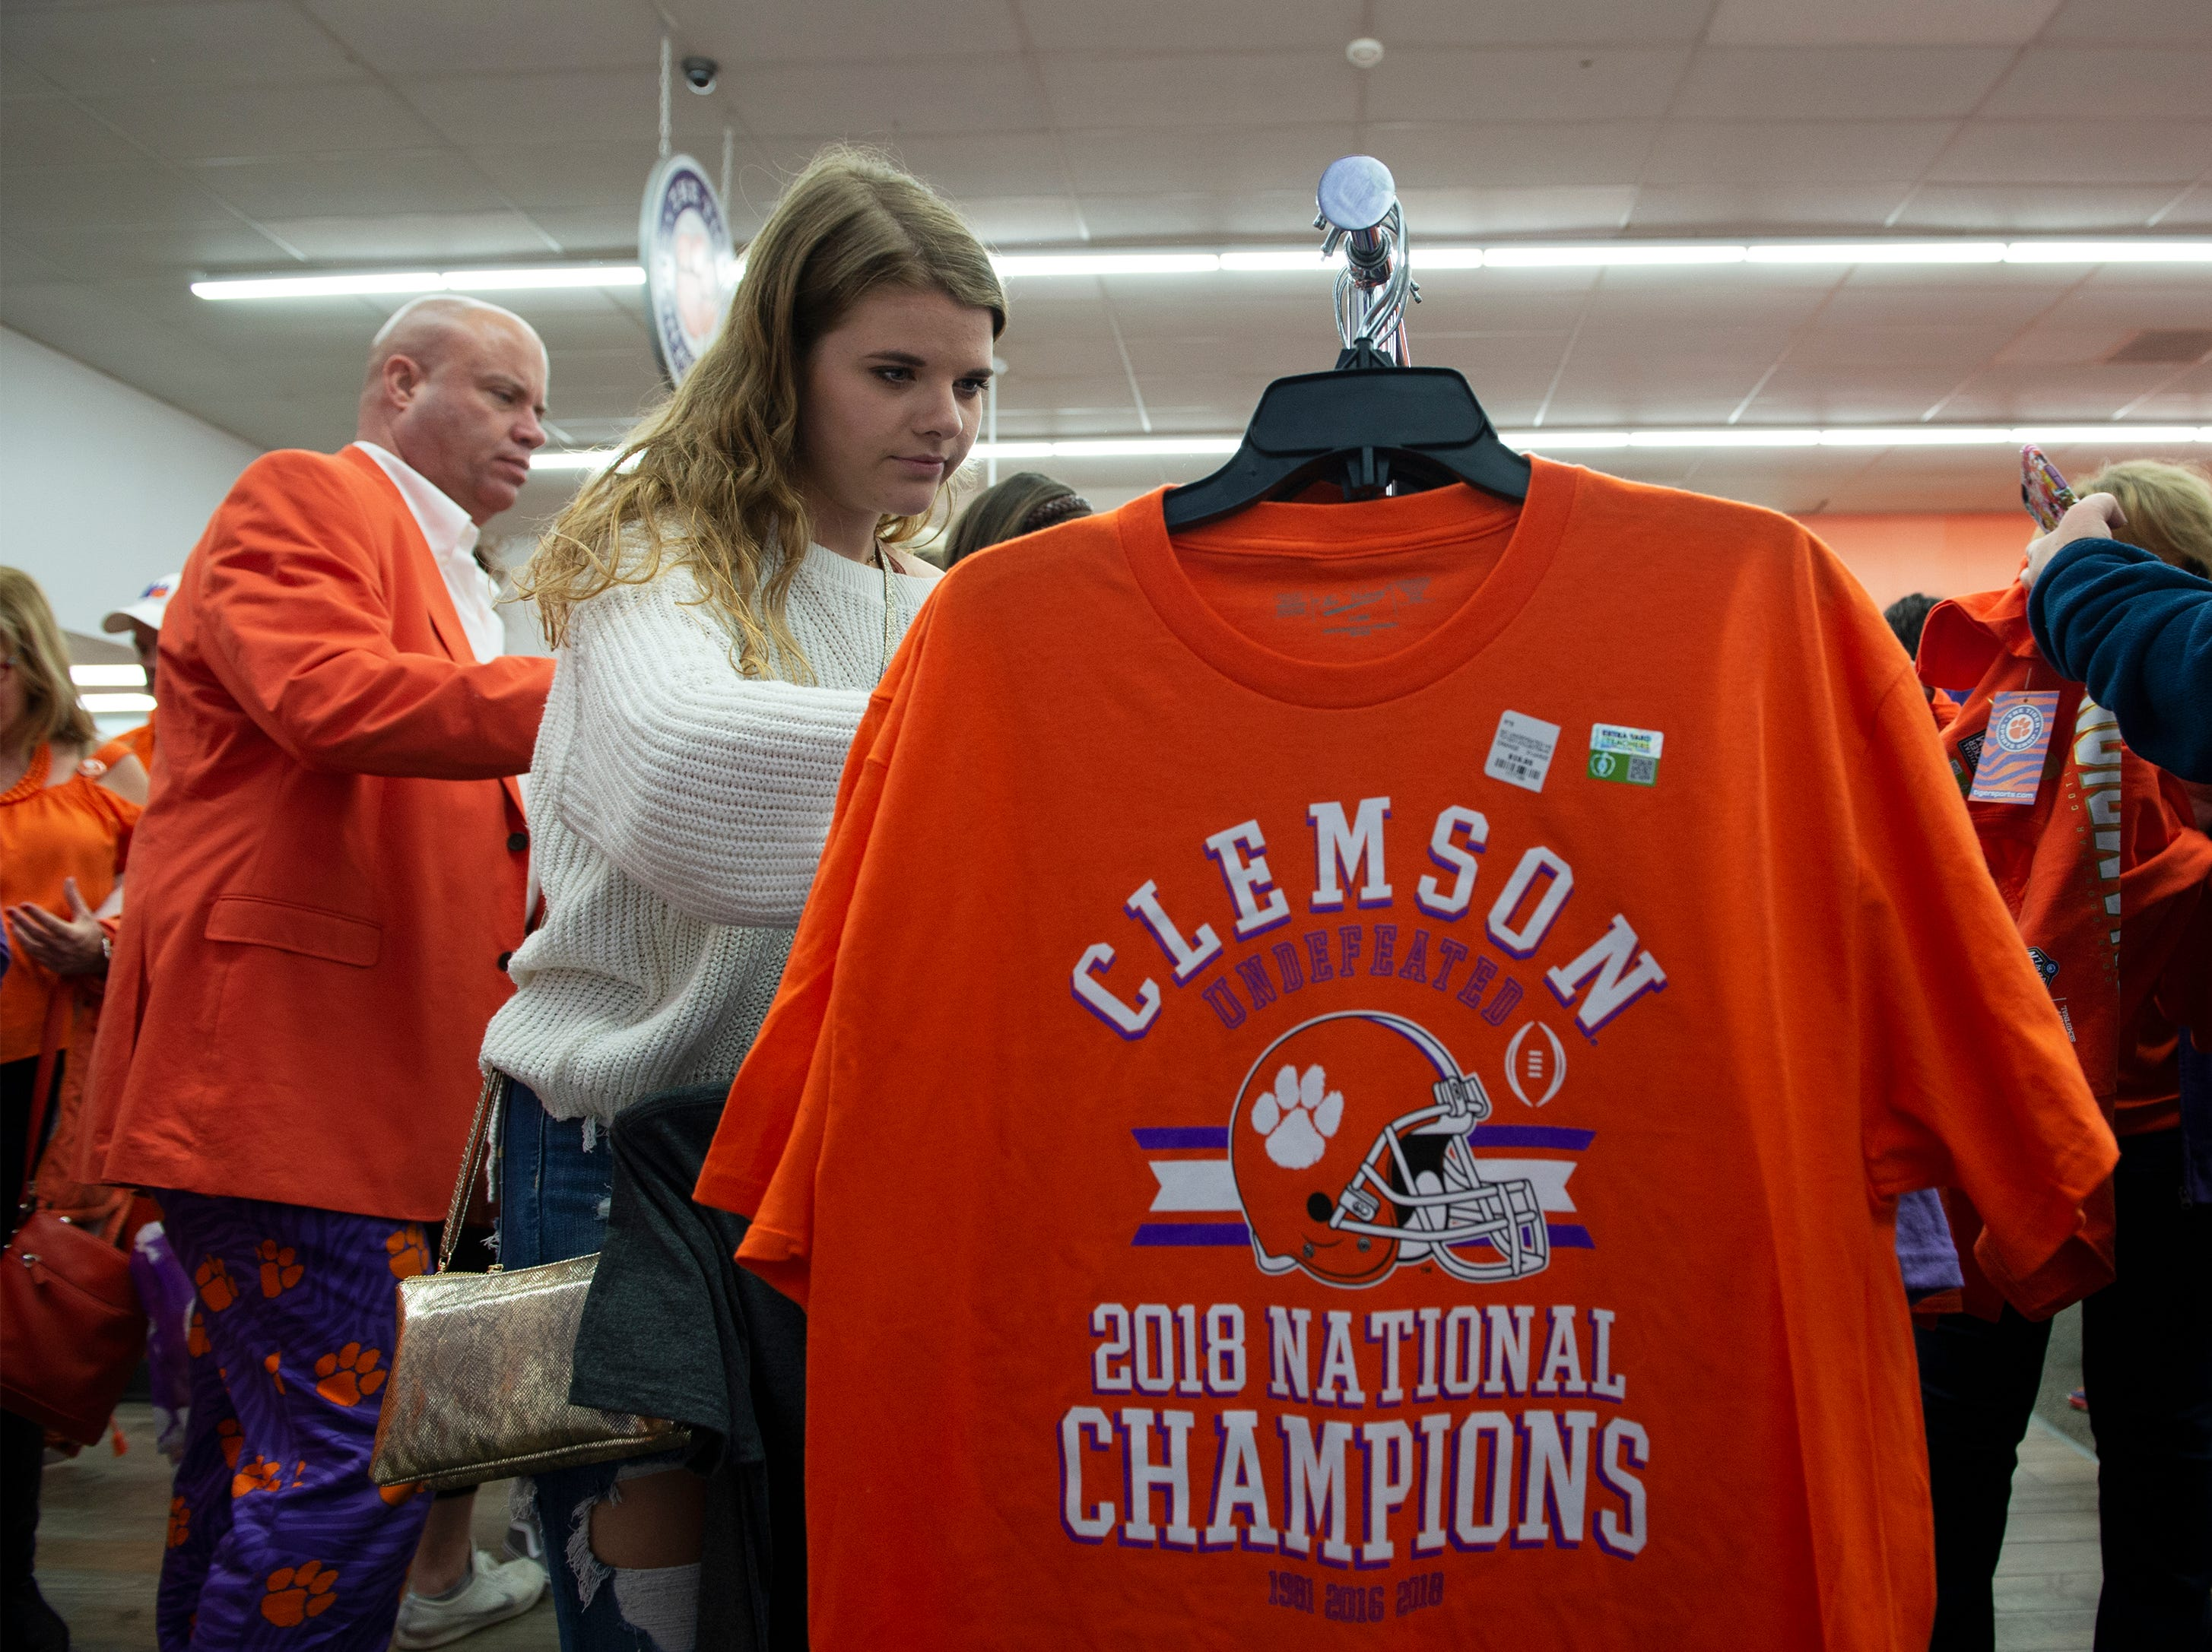 Haley Yablonowski, a sophomore, shops for championship merchandise at The Tiger Sports Shop on College Avenue after Clemson defeated Alabama in the College Football Playoff National Championship Monday, Jan. 7, 2019.